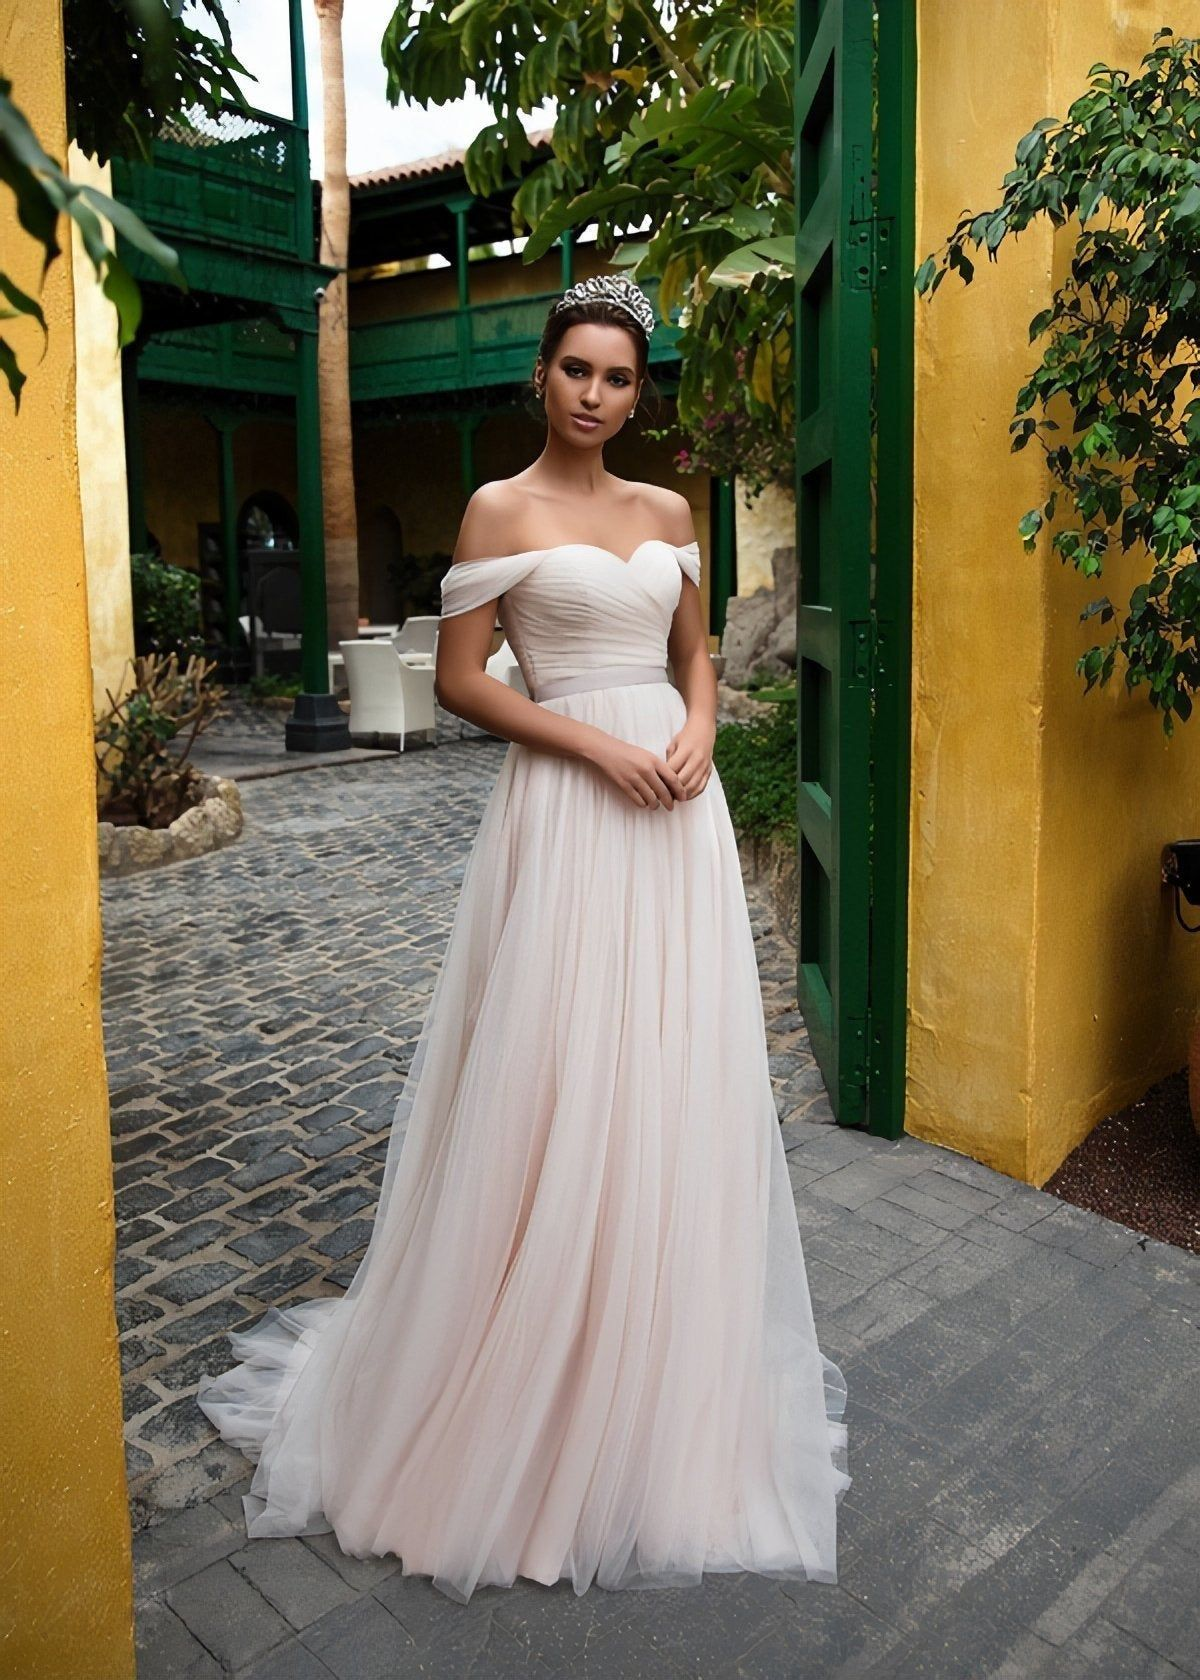 Simple A Line Off The Shoulder Wedding Dress Backless Casual Modest Bridal Gown In 2021 Modest Bridal Gowns Cheap Beach Wedding Dresses Backless Wedding Dress [ 1680 x 1200 Pixel ]